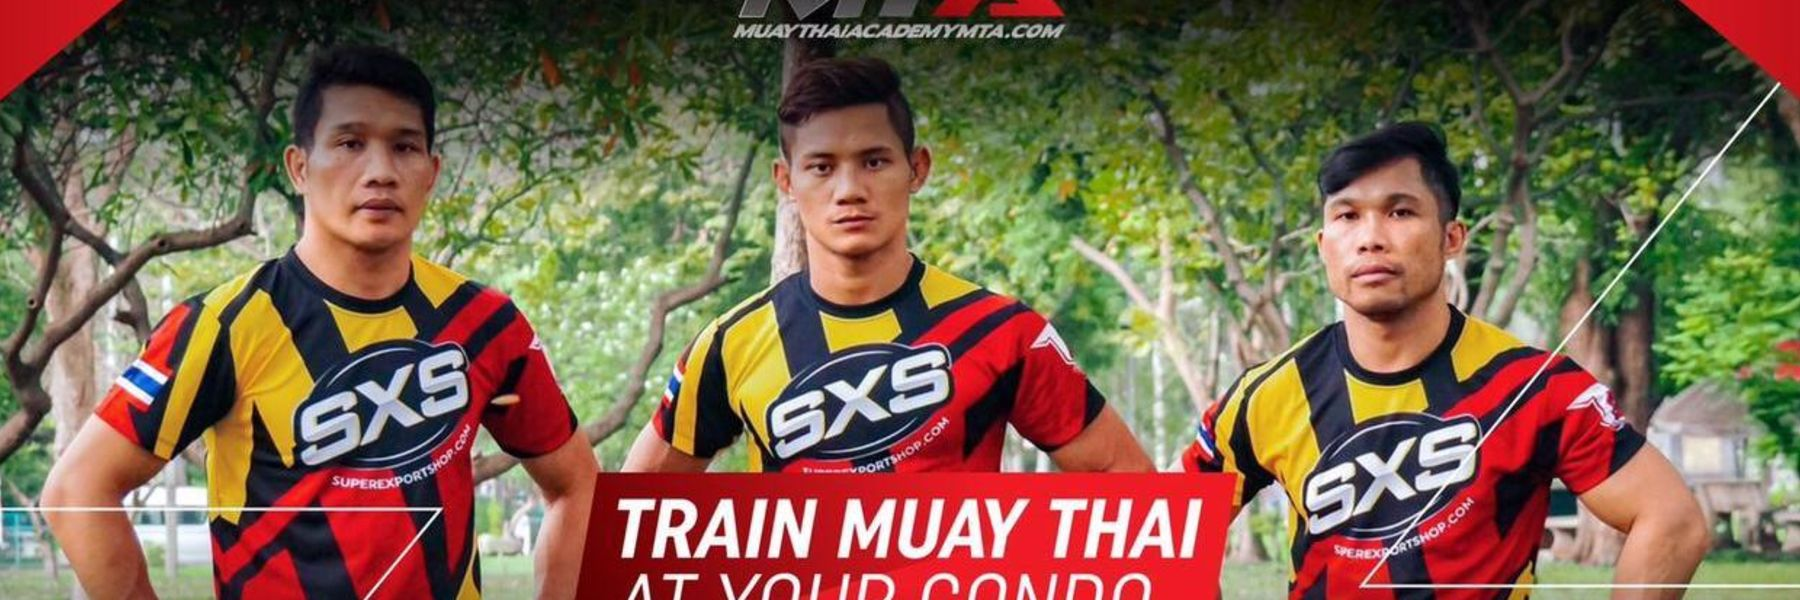 MuayThai at your Condo, by Muay Thai Academy image